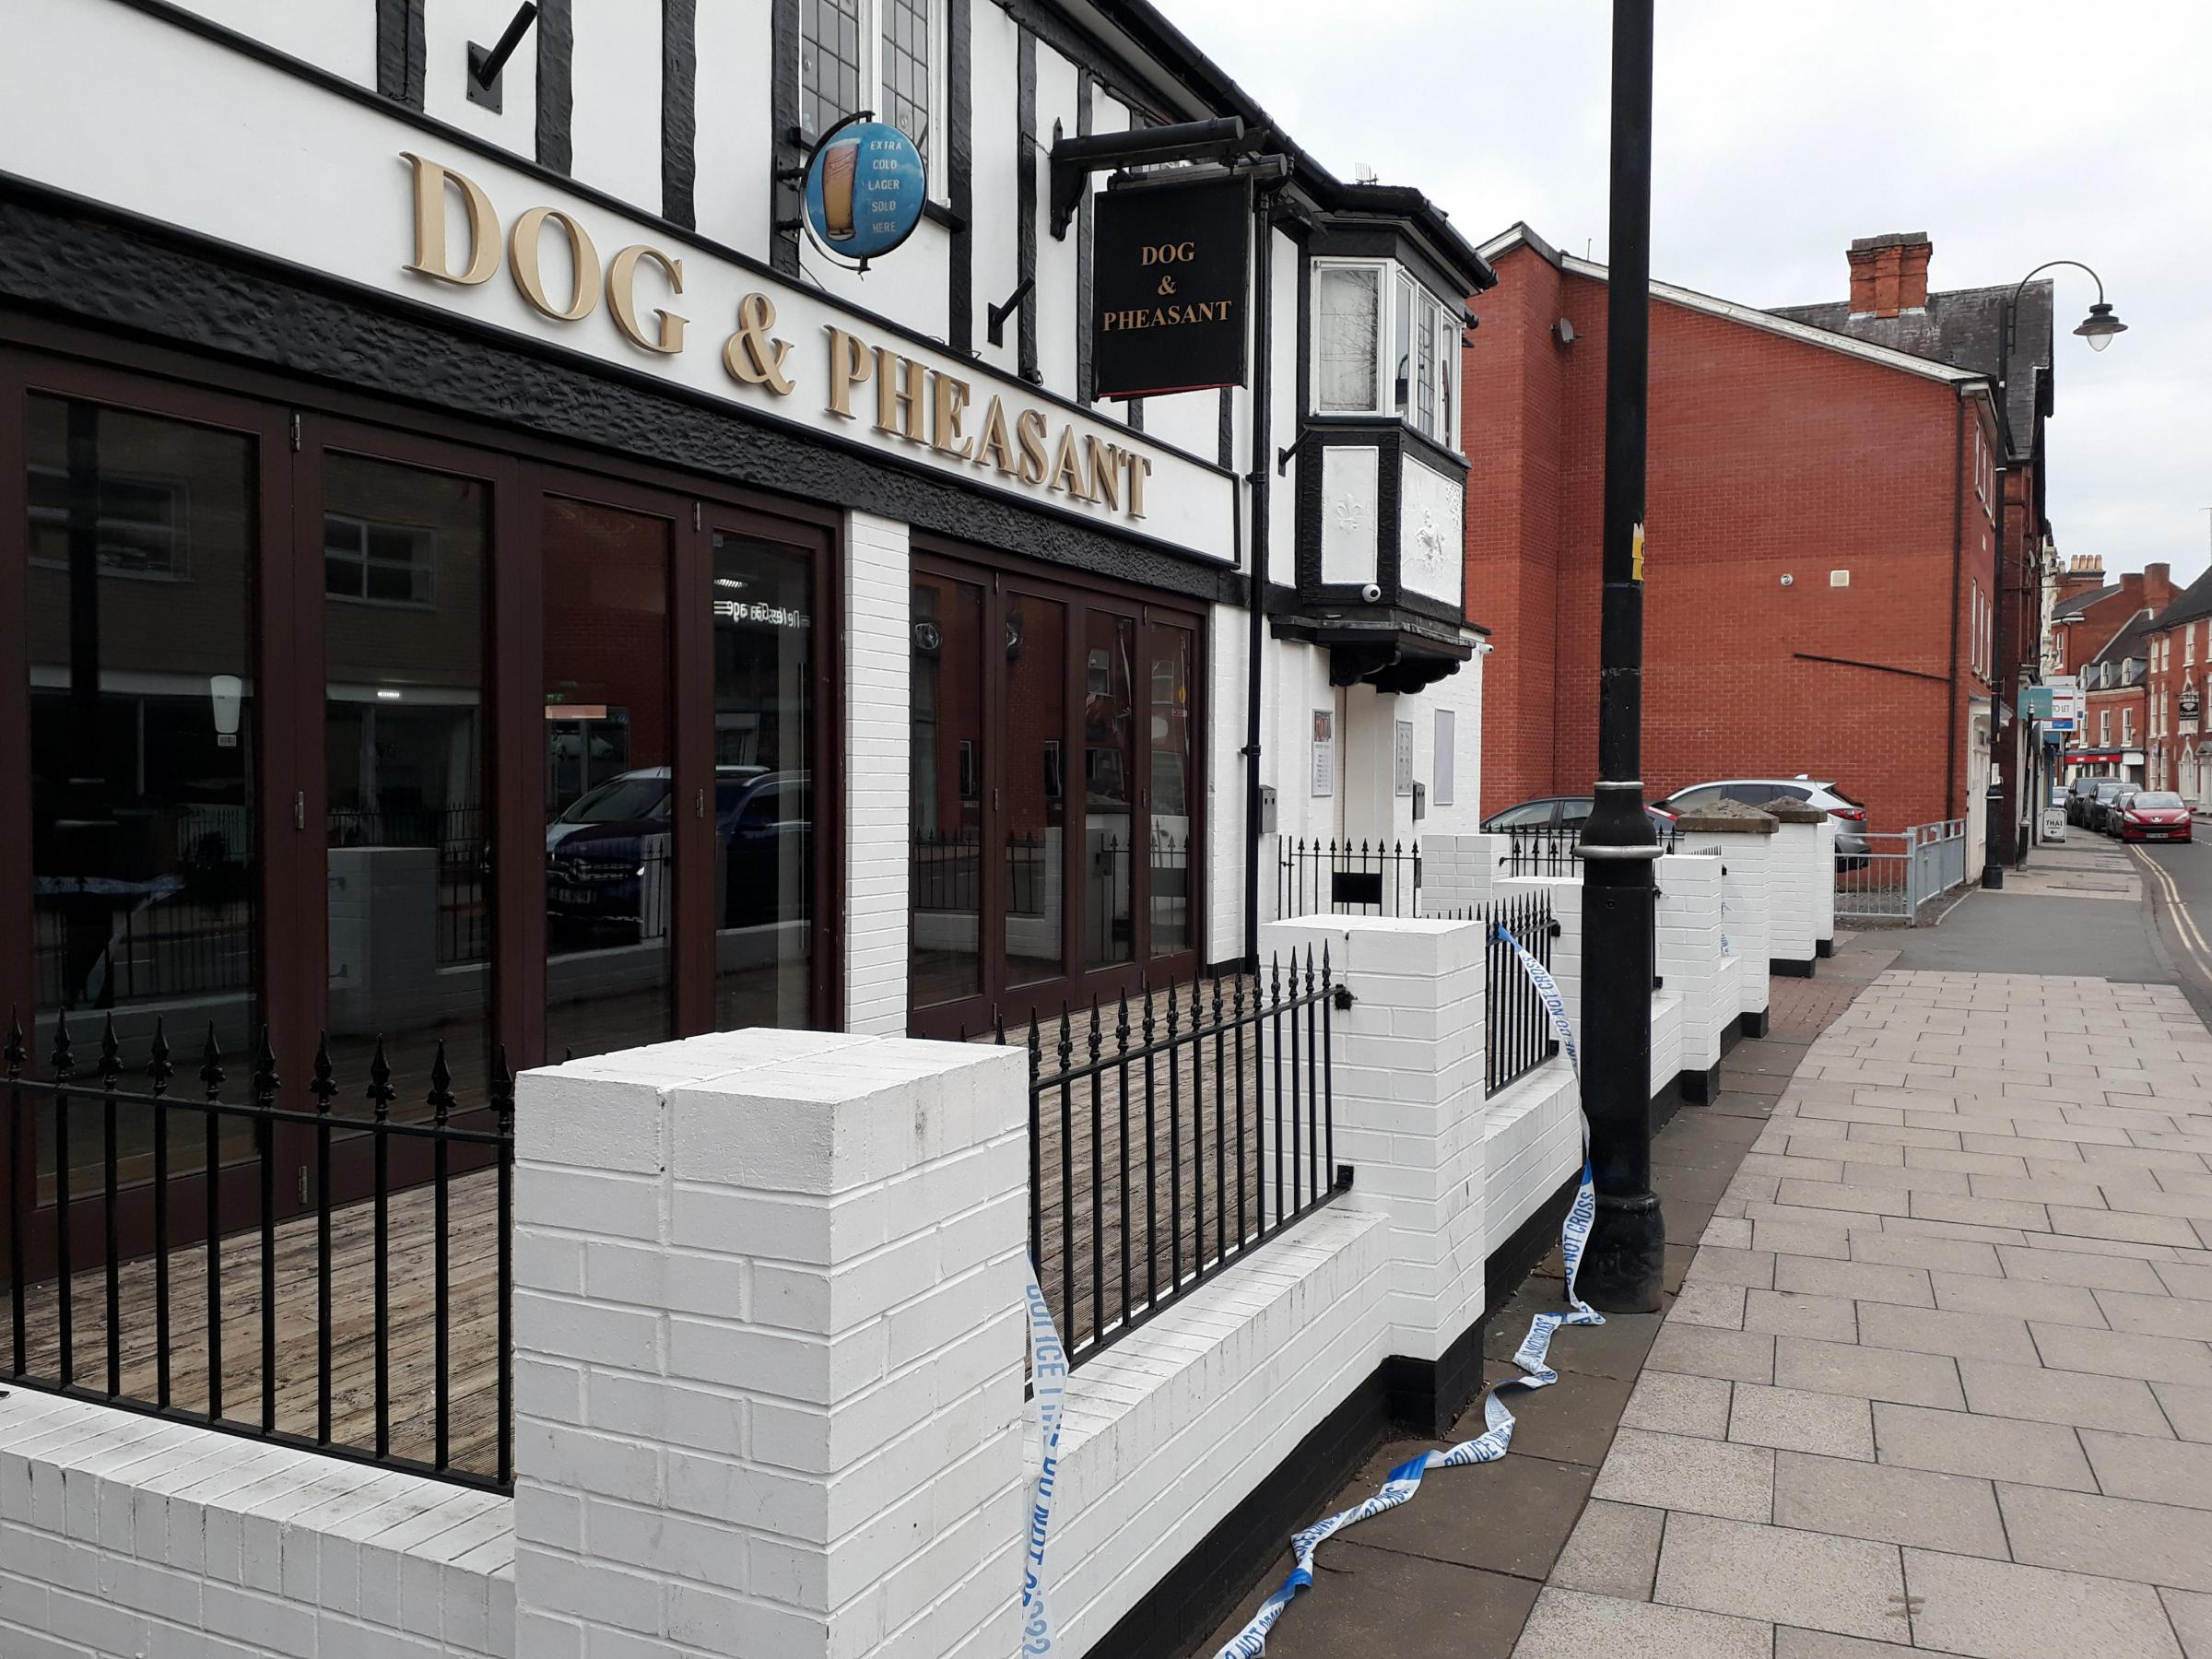 The Dog and Pheasant, where Jay was found in cardiac arrest